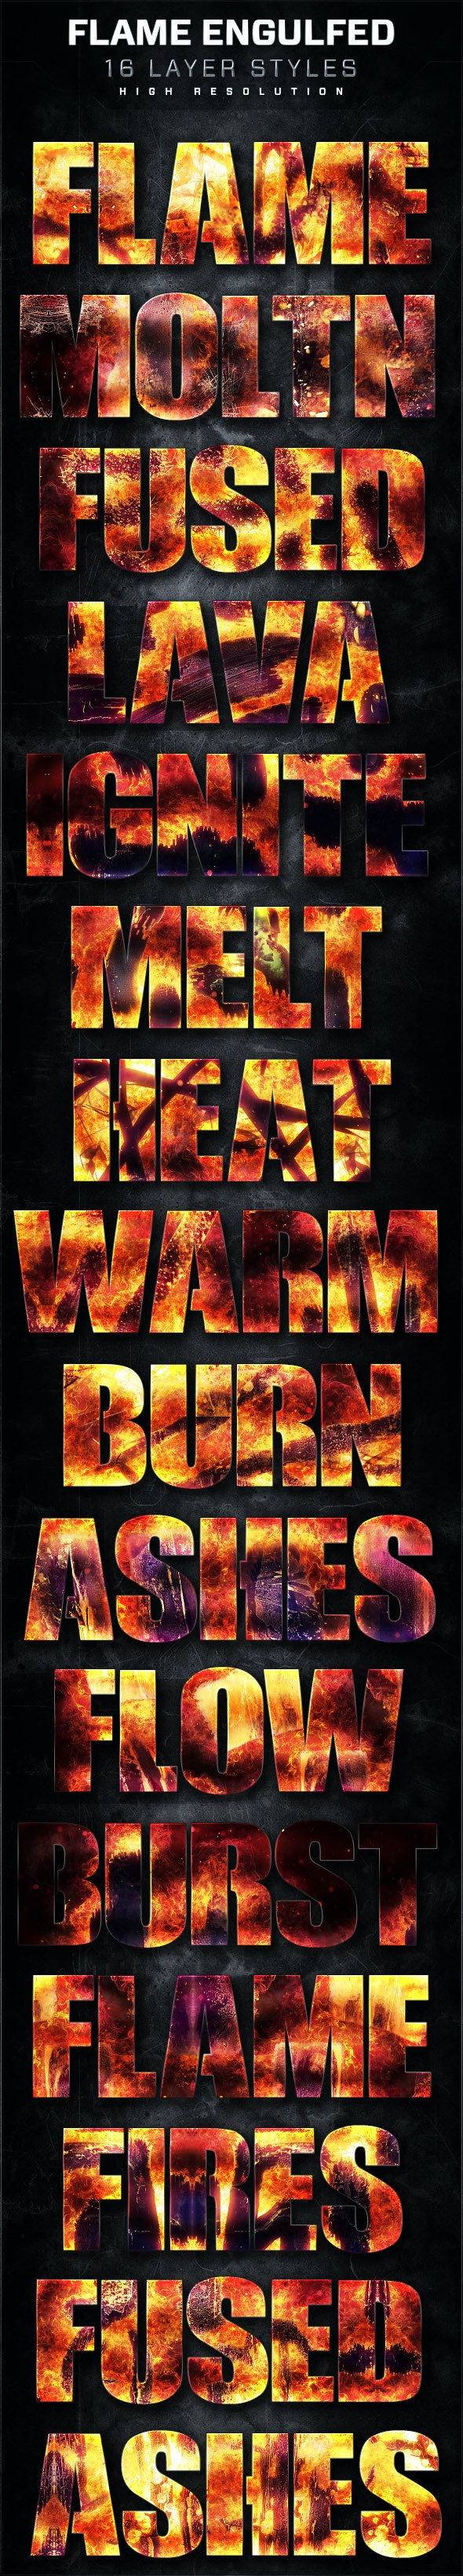 16 Flame Engulfed Layer Styles - Text Effects Styles